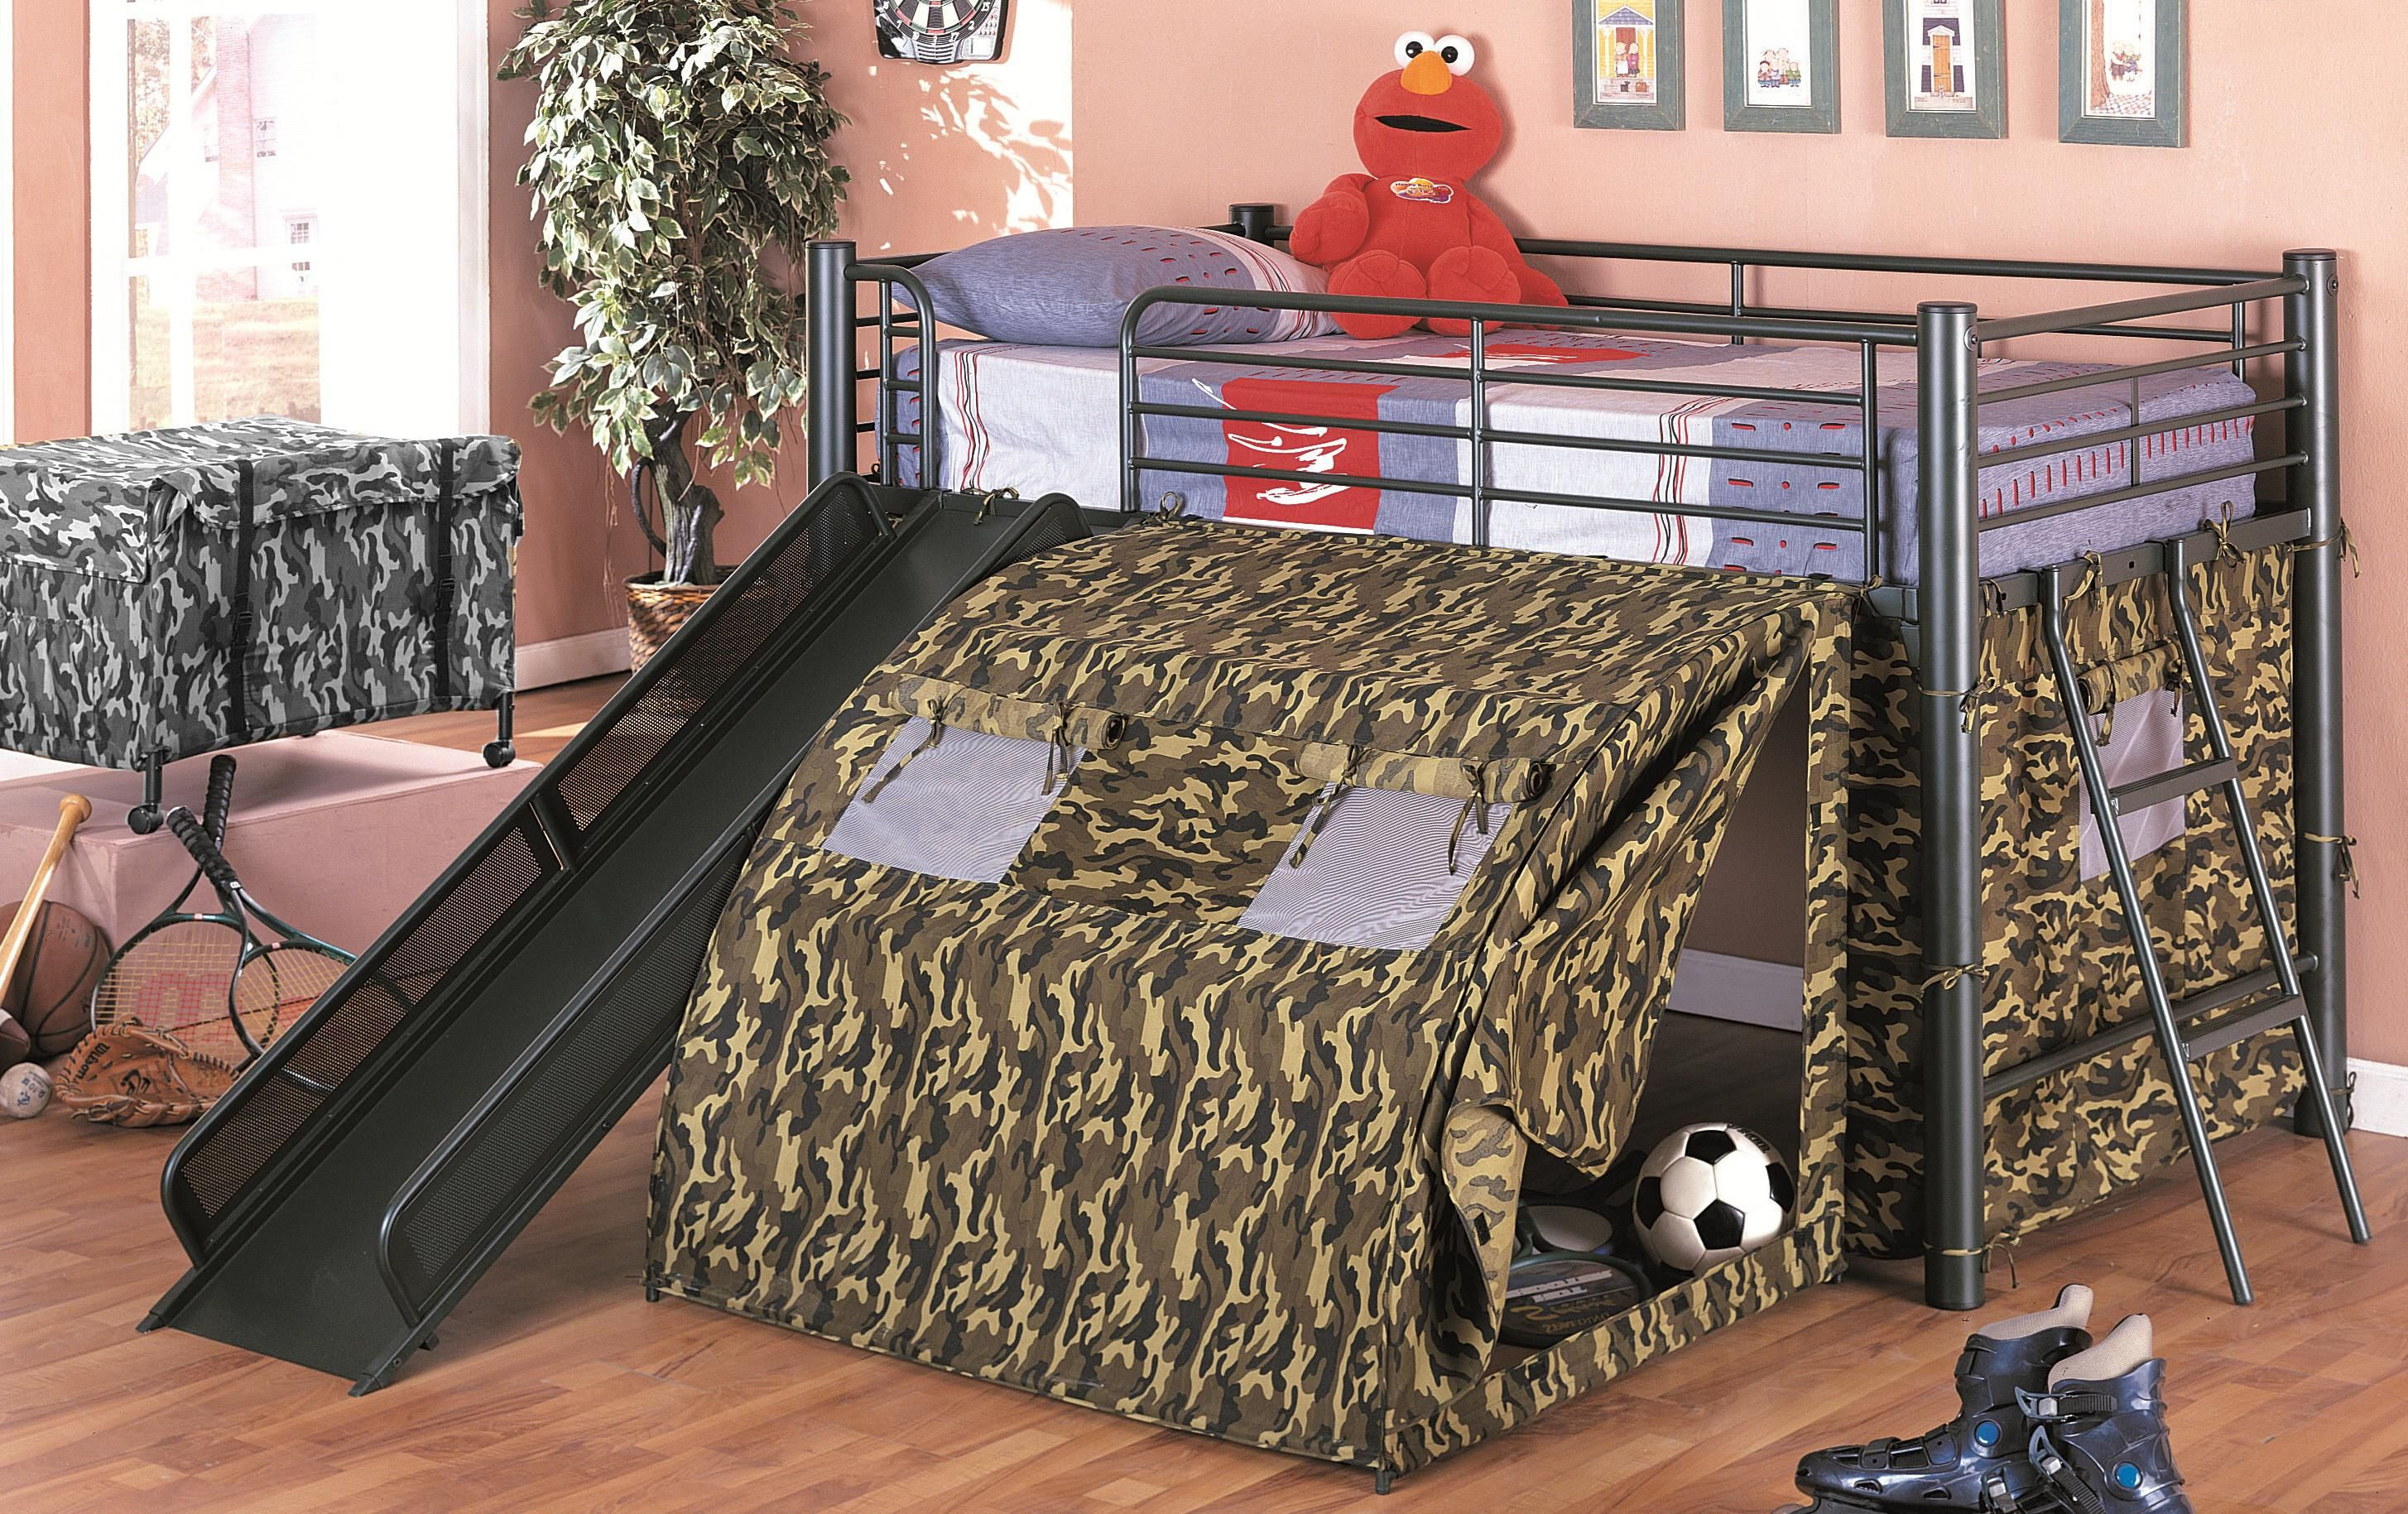 Coaster Kid s GI Child Bunk Bed with Slide and Tent Twin Size 7470 - : beds with slides and tents - memphite.com